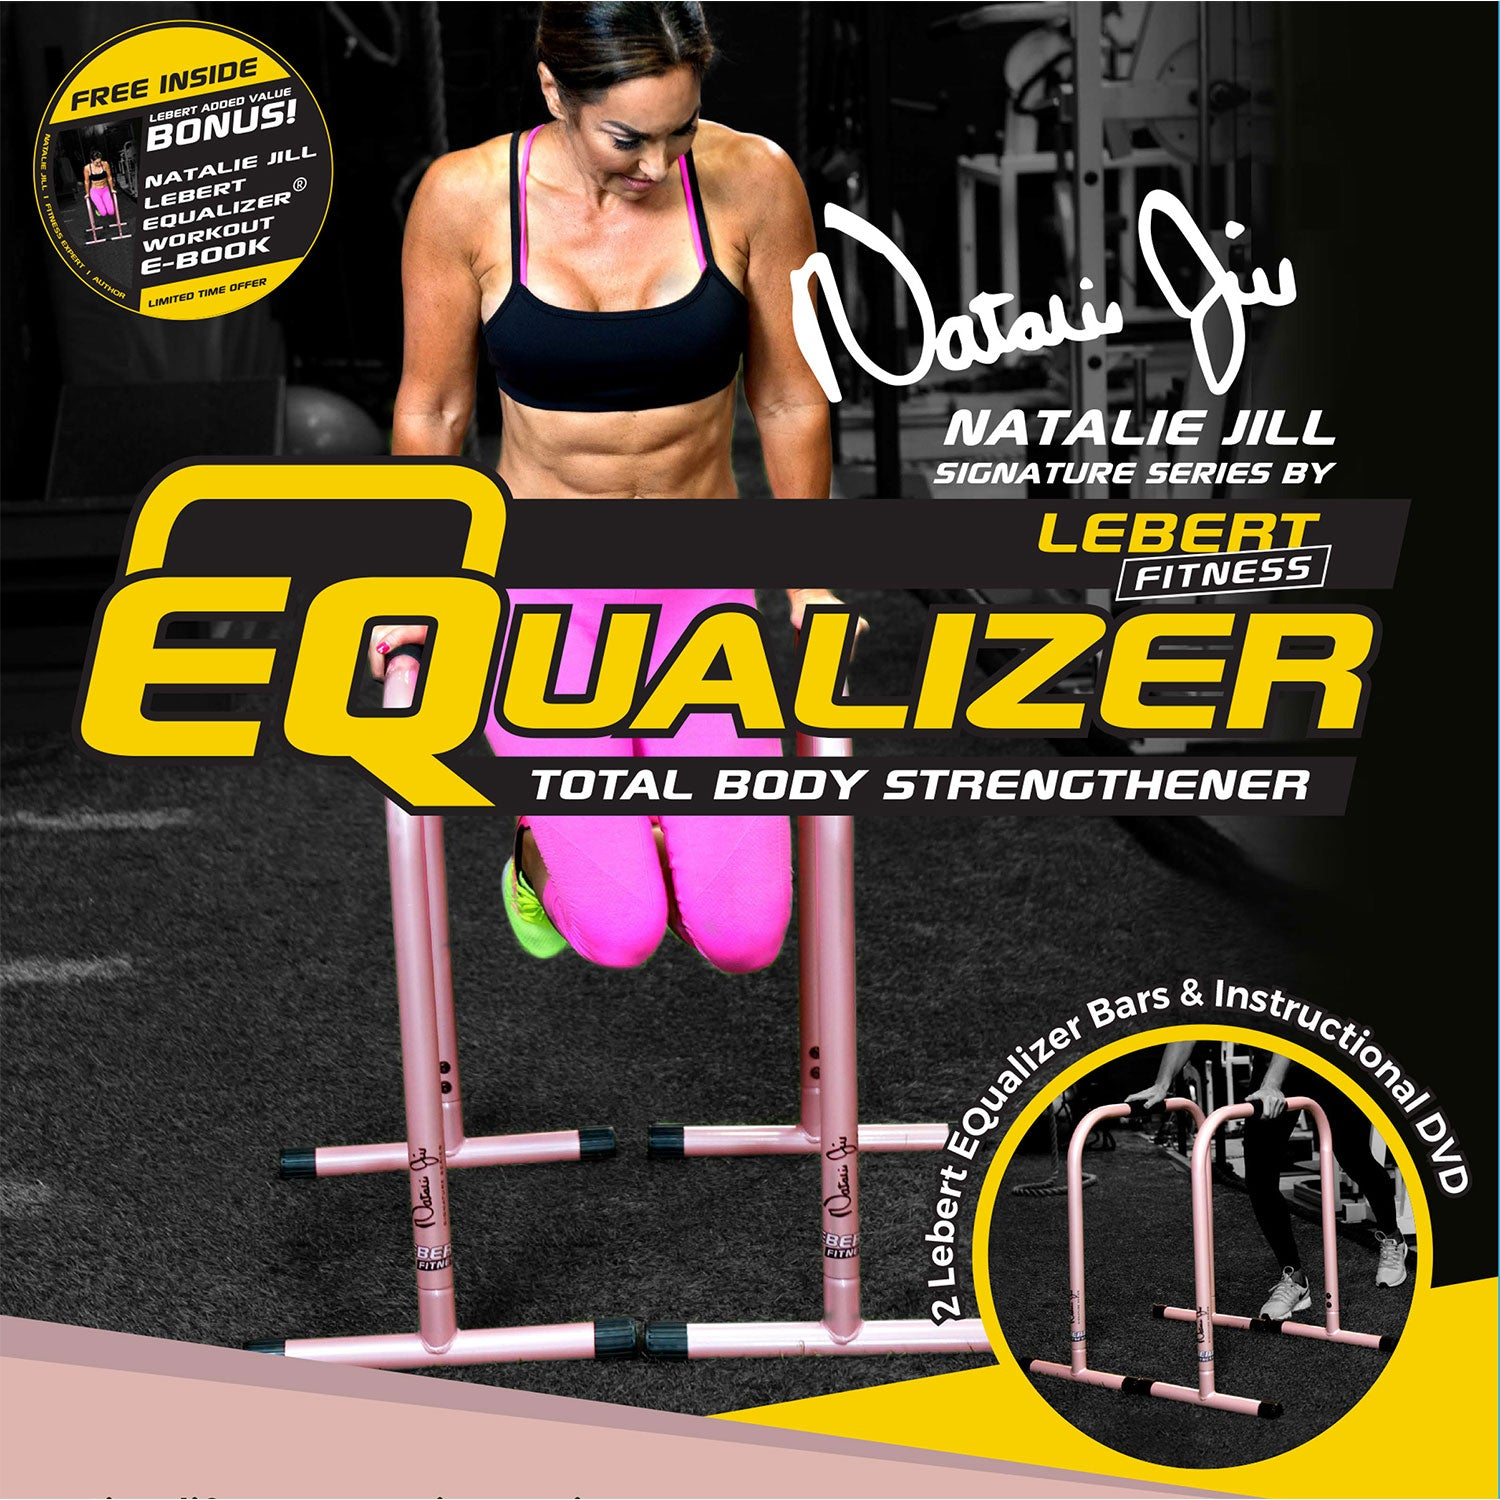 Natalie Jill Signature Series Rose Gold EQualizers